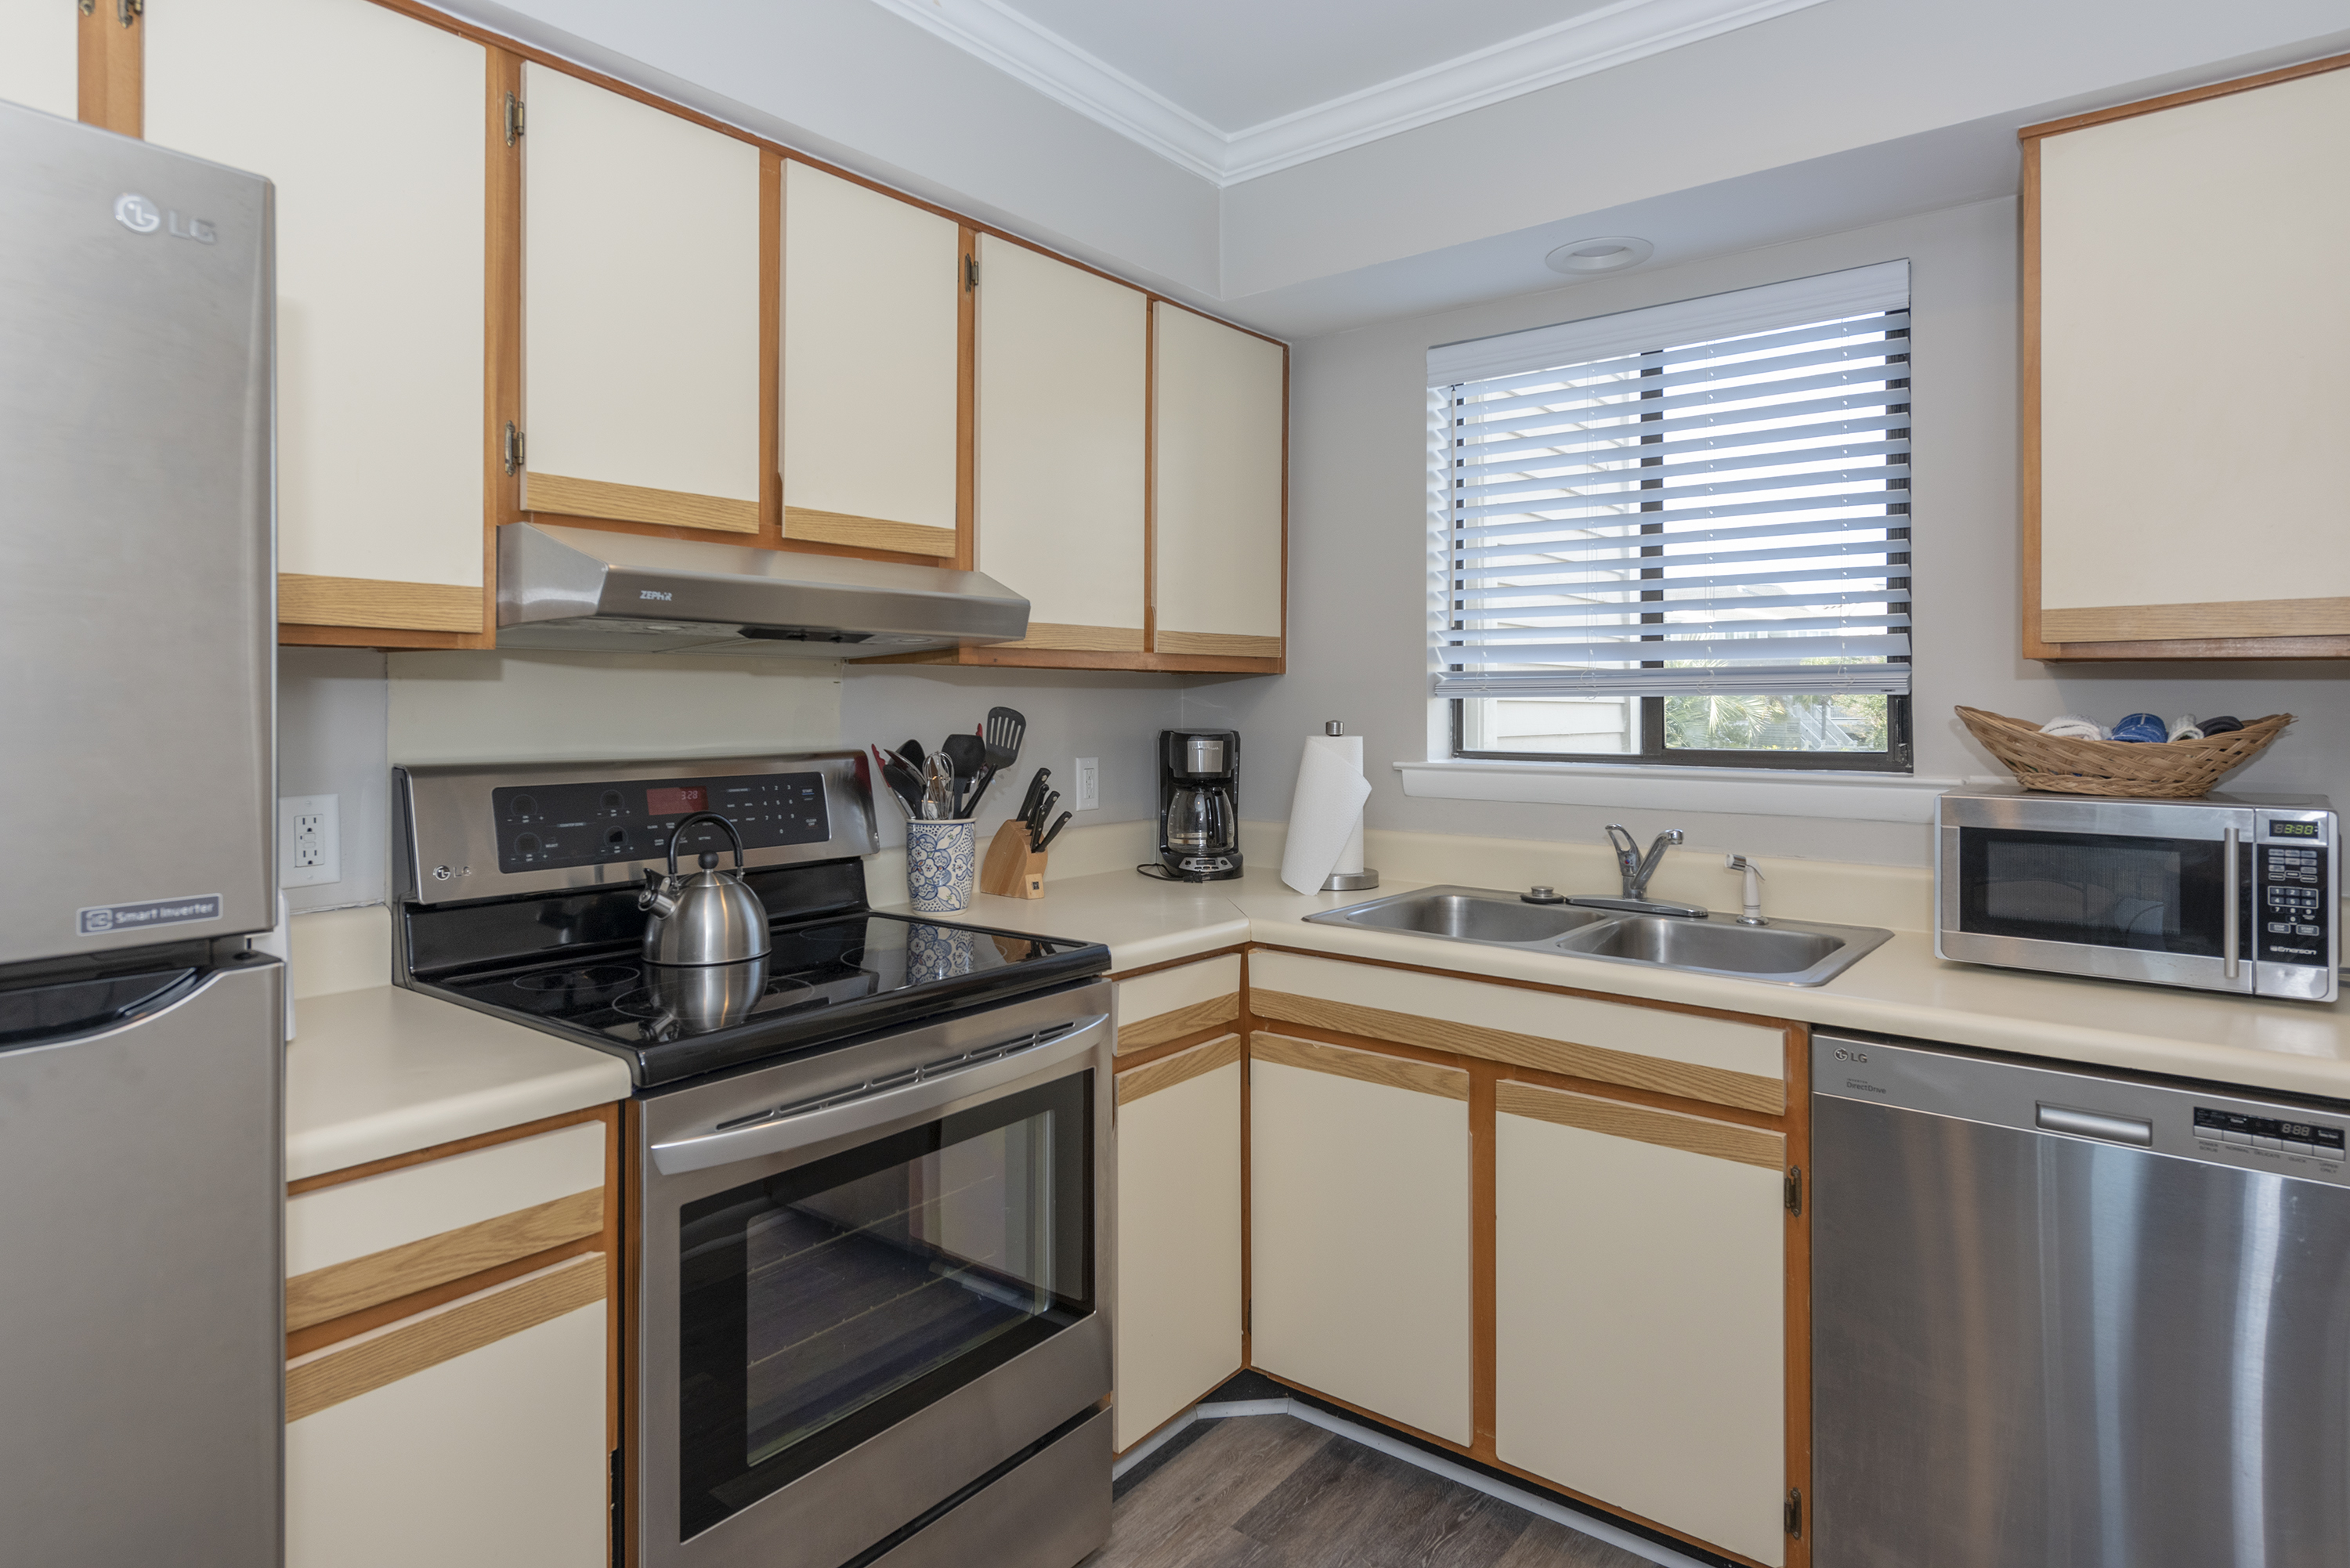 Open kitchen has stainless appliances and is well stocked.